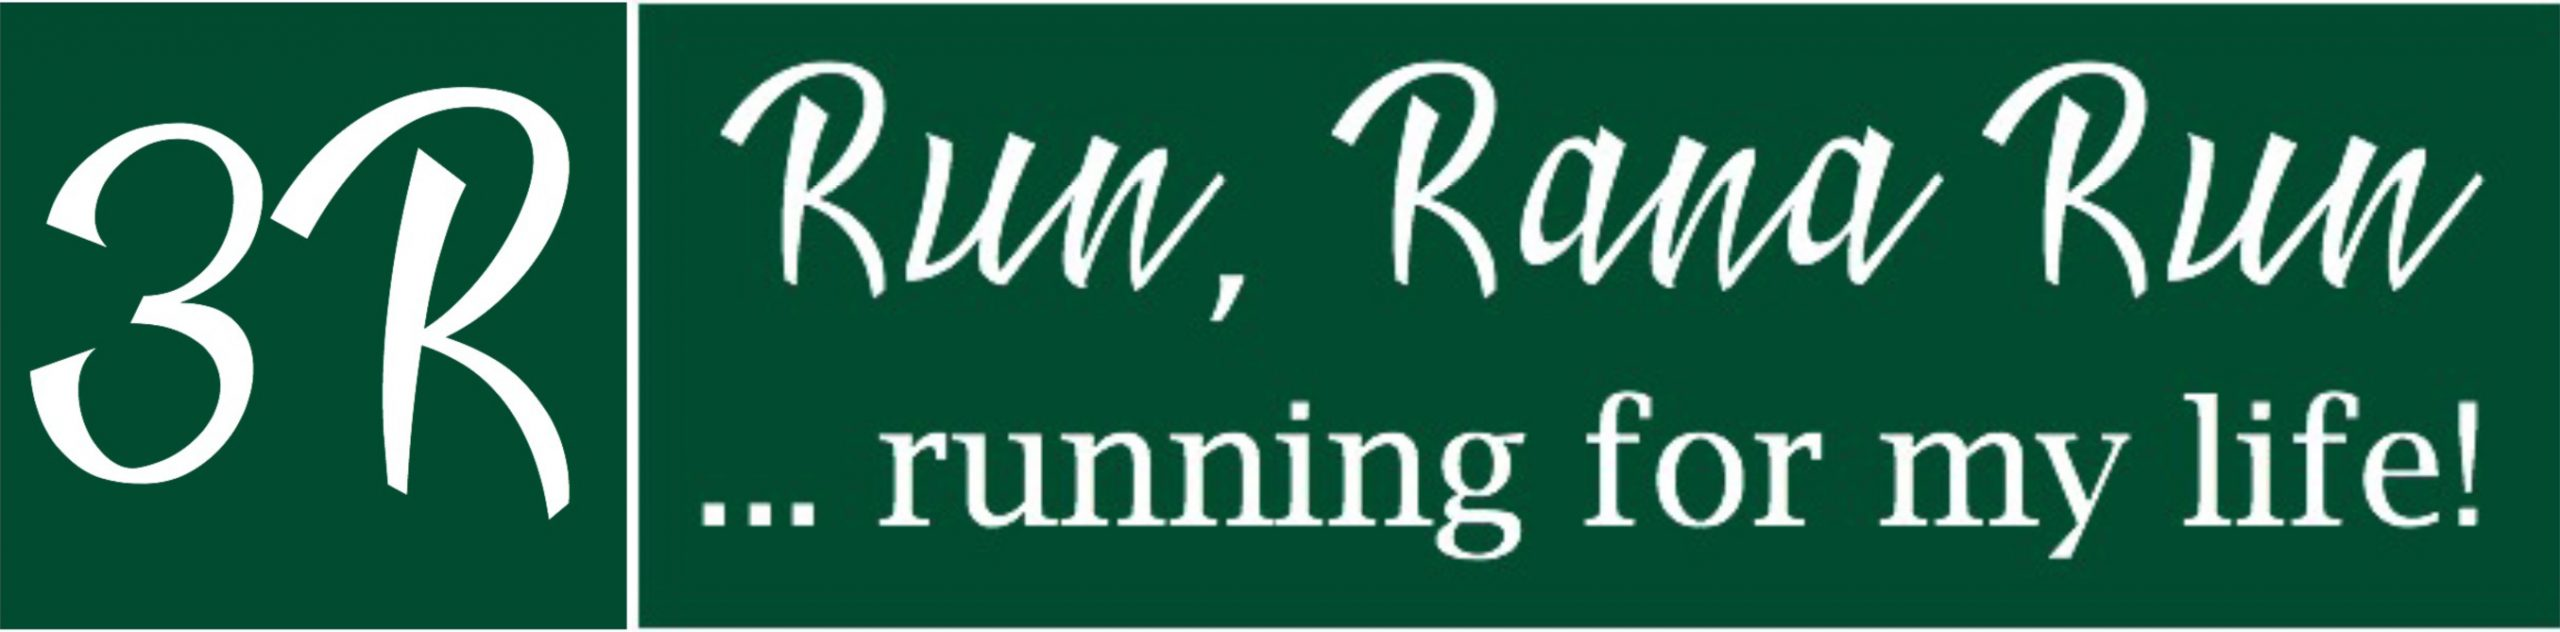 Run Rana Run - Running Blog